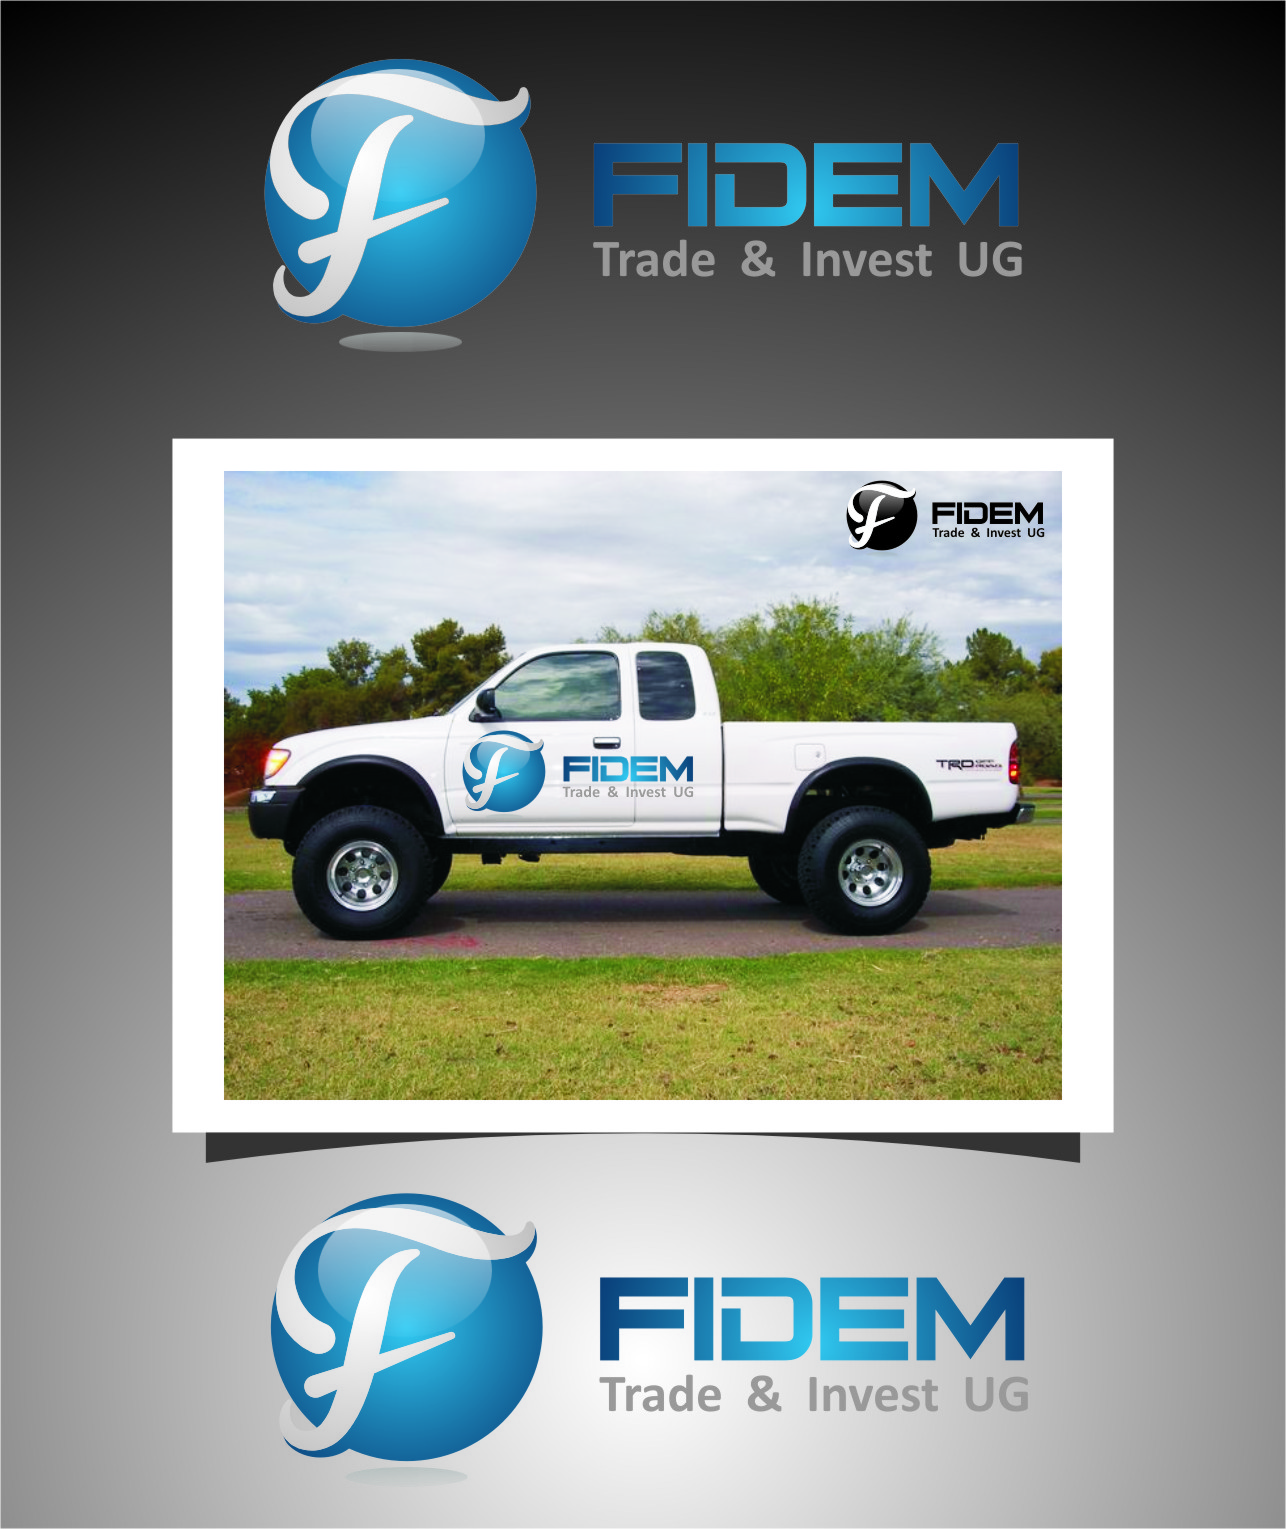 Logo Design by Ngepet_art - Entry No. 142 in the Logo Design Contest Professional Logo Design for FIDEM Trade & Invest UG.